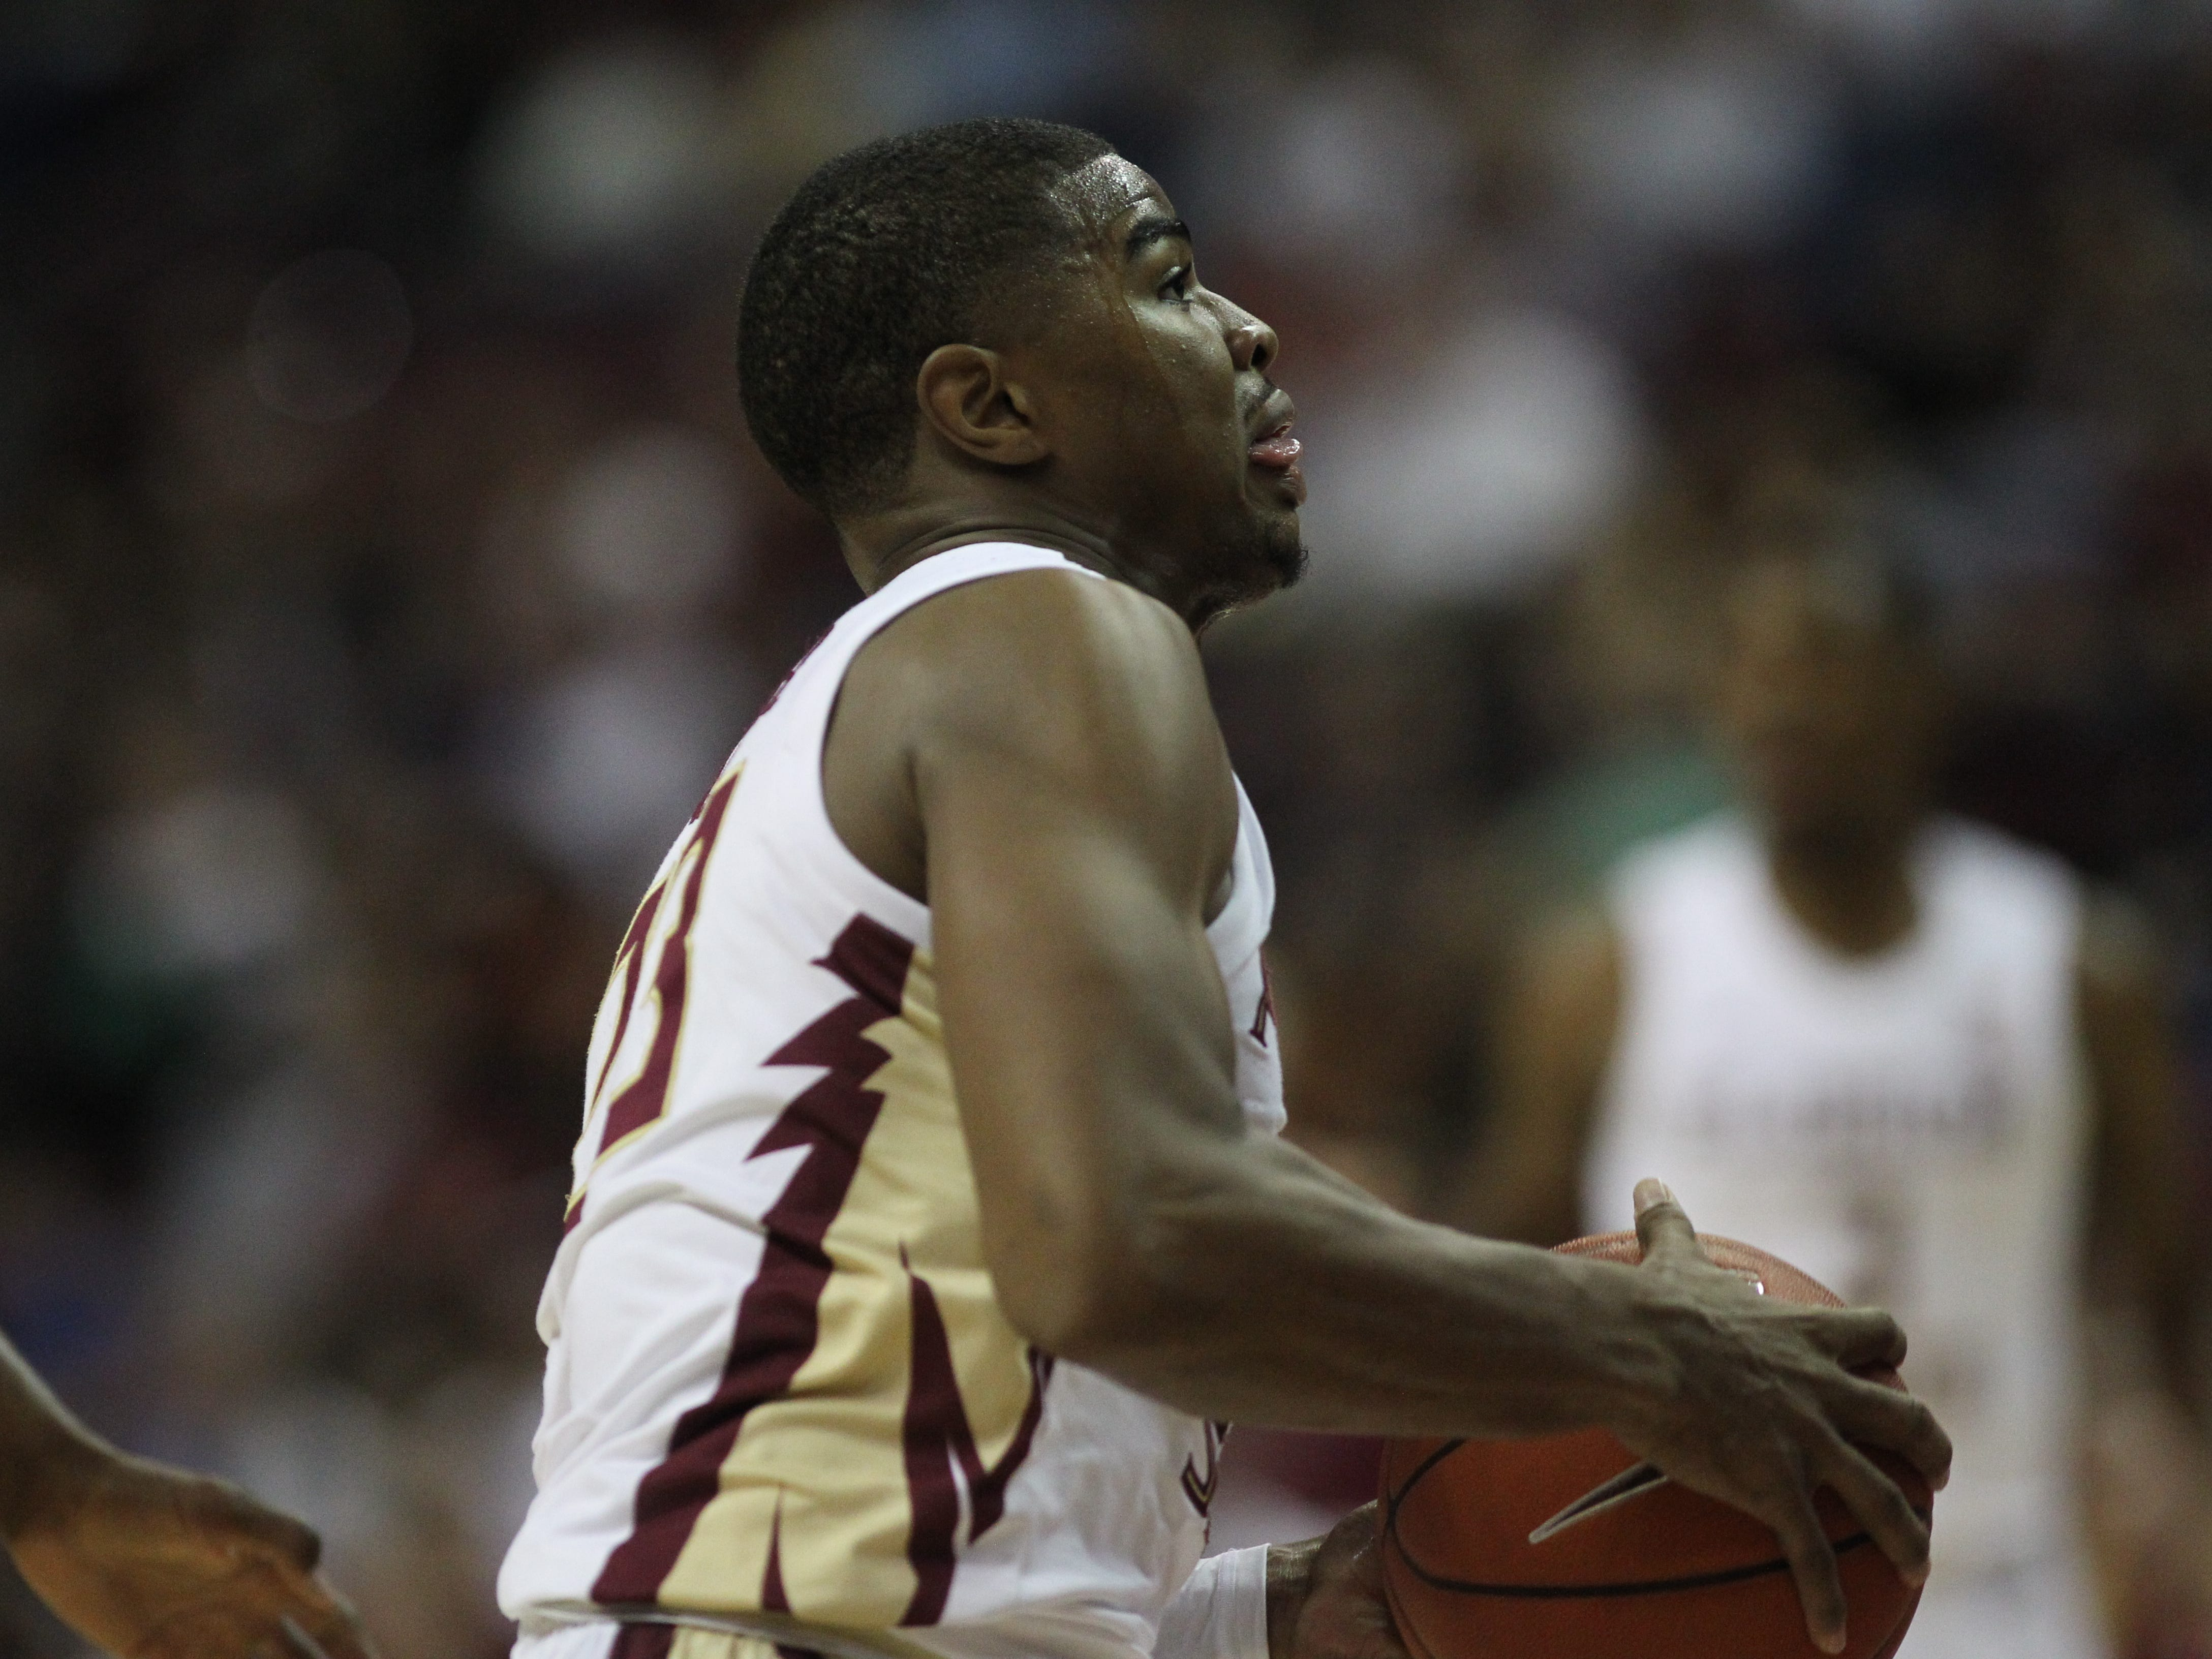 Florida State's M.J. Walker drives to the basket during the Sunshine Showdown game against Florida on Tuesday at the Tucker Civic Center.